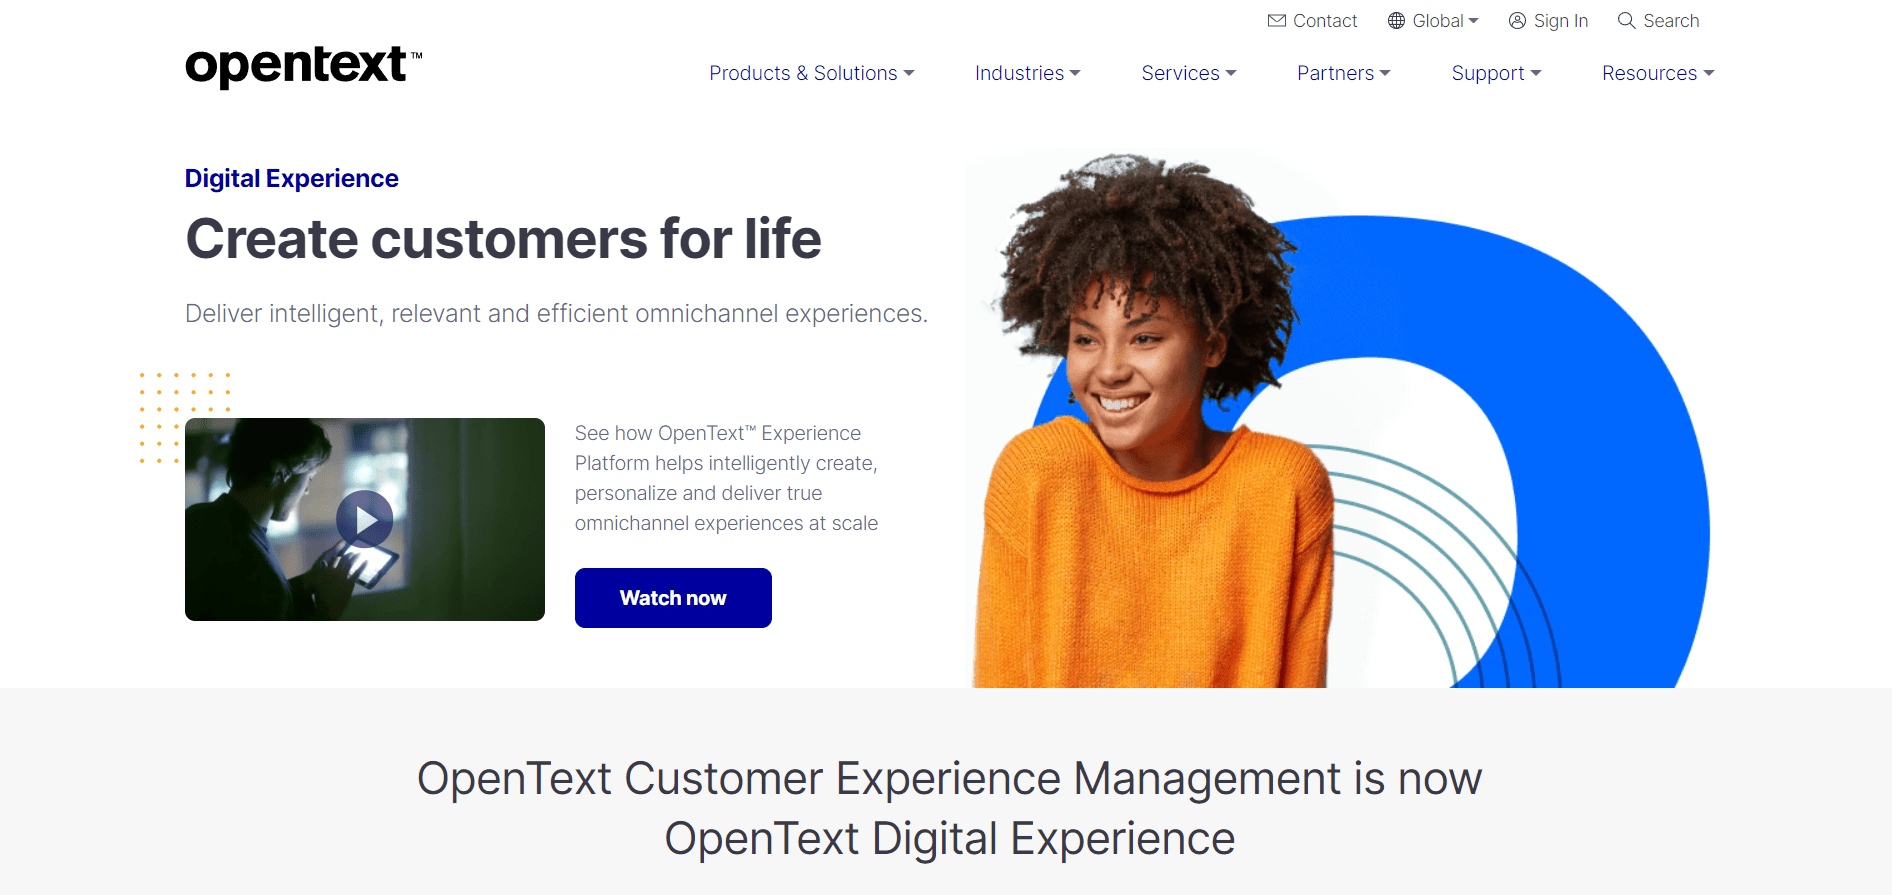 Open text digital experience tool